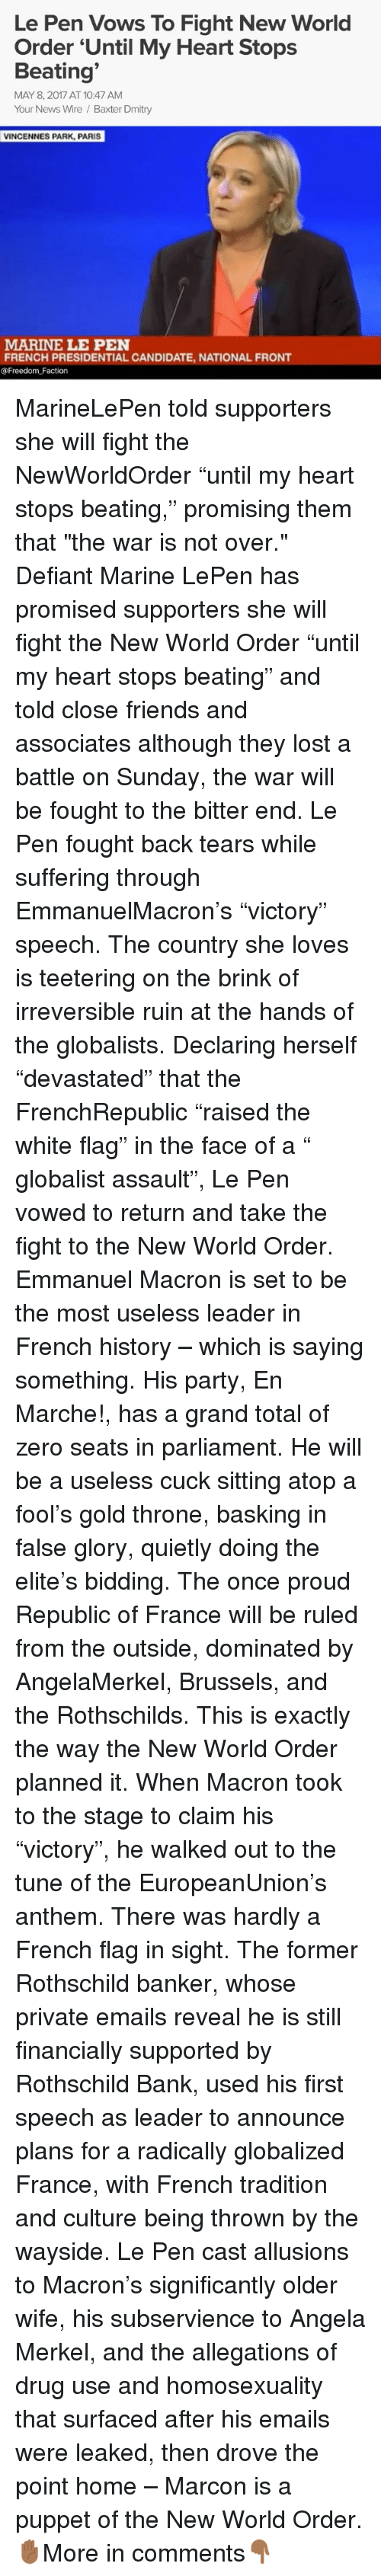 """rothschild bank: Le Pen Vows To Fight New World  Order Until My Heart Stops  Beating  MAY 8, 2017 AT 10:47 AM  Your News Wire Baxter Dmitry  VINCENNES PARK, PARIS  MARINE LE PEN  FRENCH PRESIDENTIAL CANDIDATE, NATIONAL FRONT  @Freedom Faction MarineLePen told supporters she will fight the NewWorldOrder """"until my heart stops beating,"""" promising them that """"the war is not over."""" Defiant Marine LePen has promised supporters she will fight the New World Order """"until my heart stops beating"""" and told close friends and associates although they lost a battle on Sunday, the war will be fought to the bitter end. Le Pen fought back tears while suffering through EmmanuelMacron's """"victory"""" speech. The country she loves is teetering on the brink of irreversible ruin at the hands of the globalists. Declaring herself """"devastated"""" that the FrenchRepublic """"raised the white flag"""" in the face of a """" globalist assault"""", Le Pen vowed to return and take the fight to the New World Order. Emmanuel Macron is set to be the most useless leader in French history – which is saying something. His party, En Marche!, has a grand total of zero seats in parliament. He will be a useless cuck sitting atop a fool's gold throne, basking in false glory, quietly doing the elite's bidding. The once proud Republic of France will be ruled from the outside, dominated by AngelaMerkel, Brussels, and the Rothschilds. This is exactly the way the New World Order planned it. When Macron took to the stage to claim his """"victory"""", he walked out to the tune of the EuropeanUnion's anthem. There was hardly a French flag in sight. The former Rothschild banker, whose private emails reveal he is still financially supported by Rothschild Bank, used his first speech as leader to announce plans for a radically globalized France, with French tradition and culture being thrown by the wayside. Le Pen cast allusions to Macron's significantly older wife, his subservience to Angela Merkel, and the allegations of drug use and homosexua"""